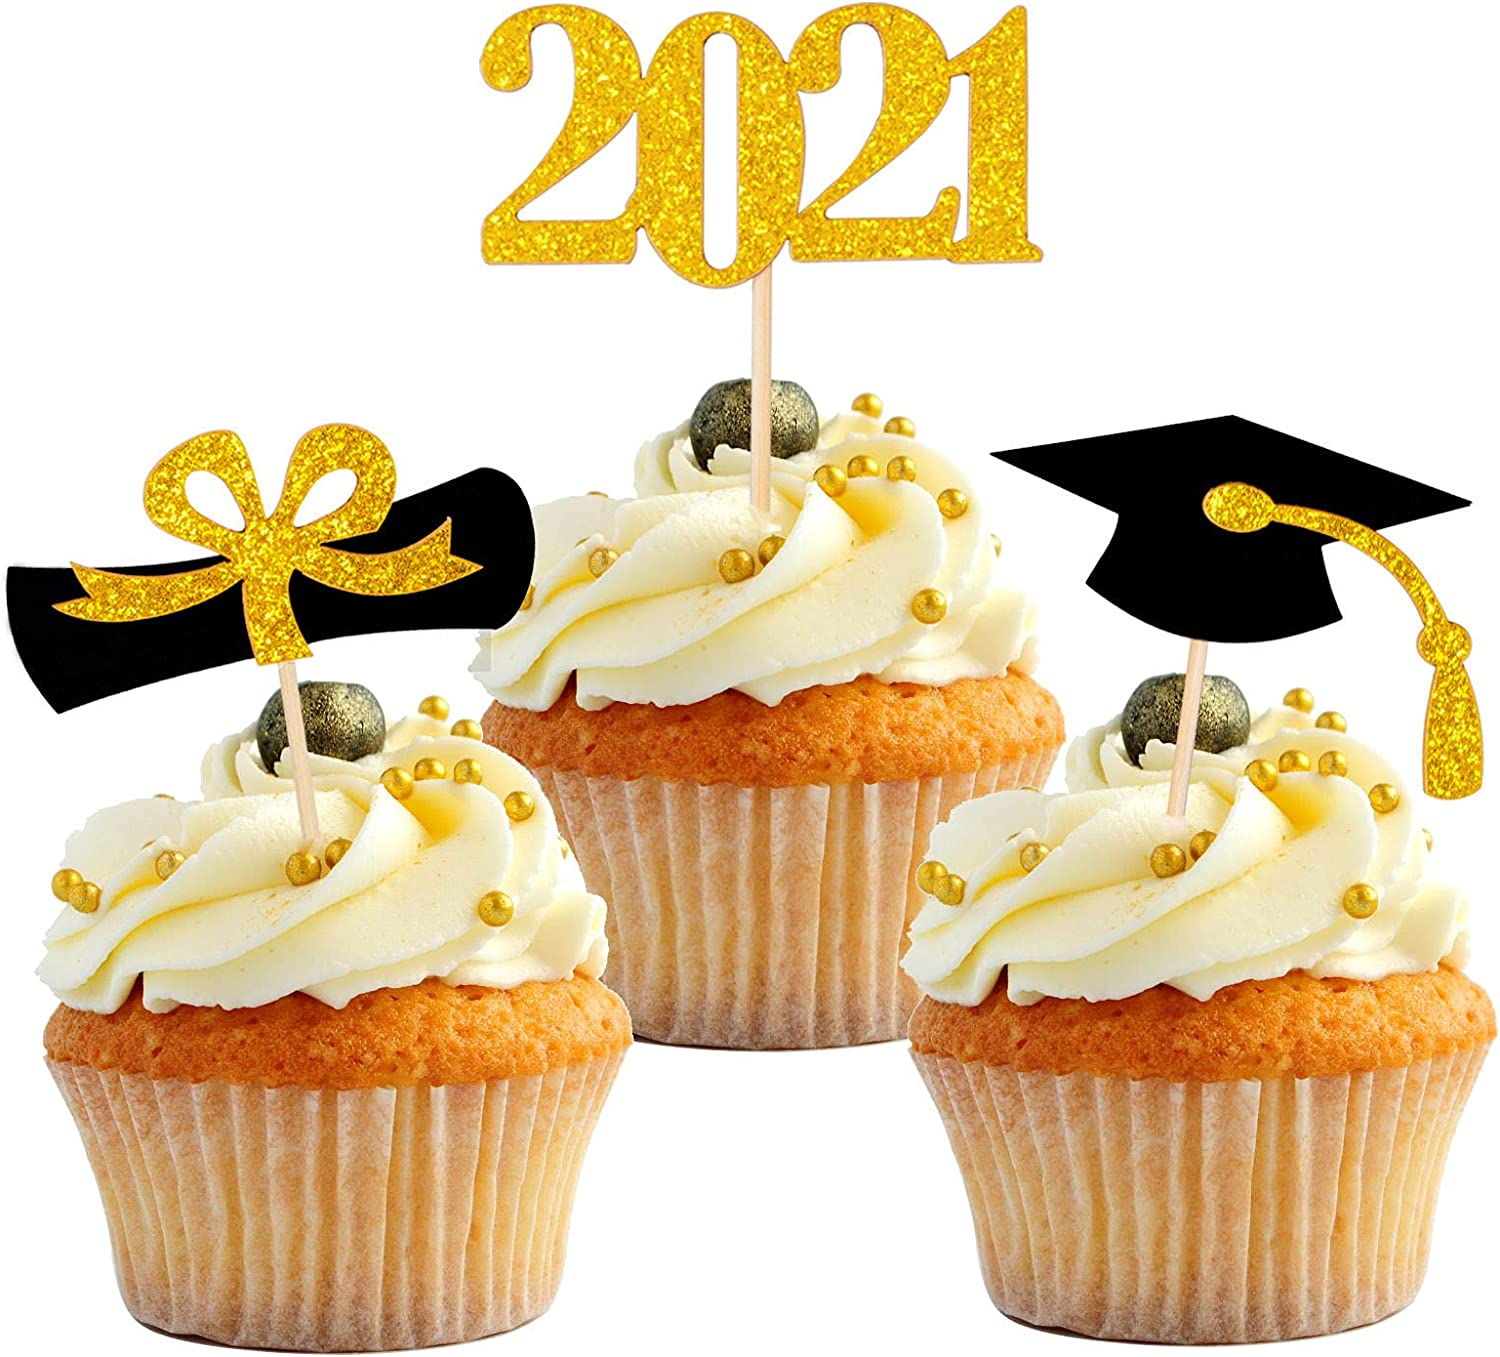 Qibote 1 year warranty Graduation Cupcake Max 77% OFF Toppers Dec 2021 Cake Party